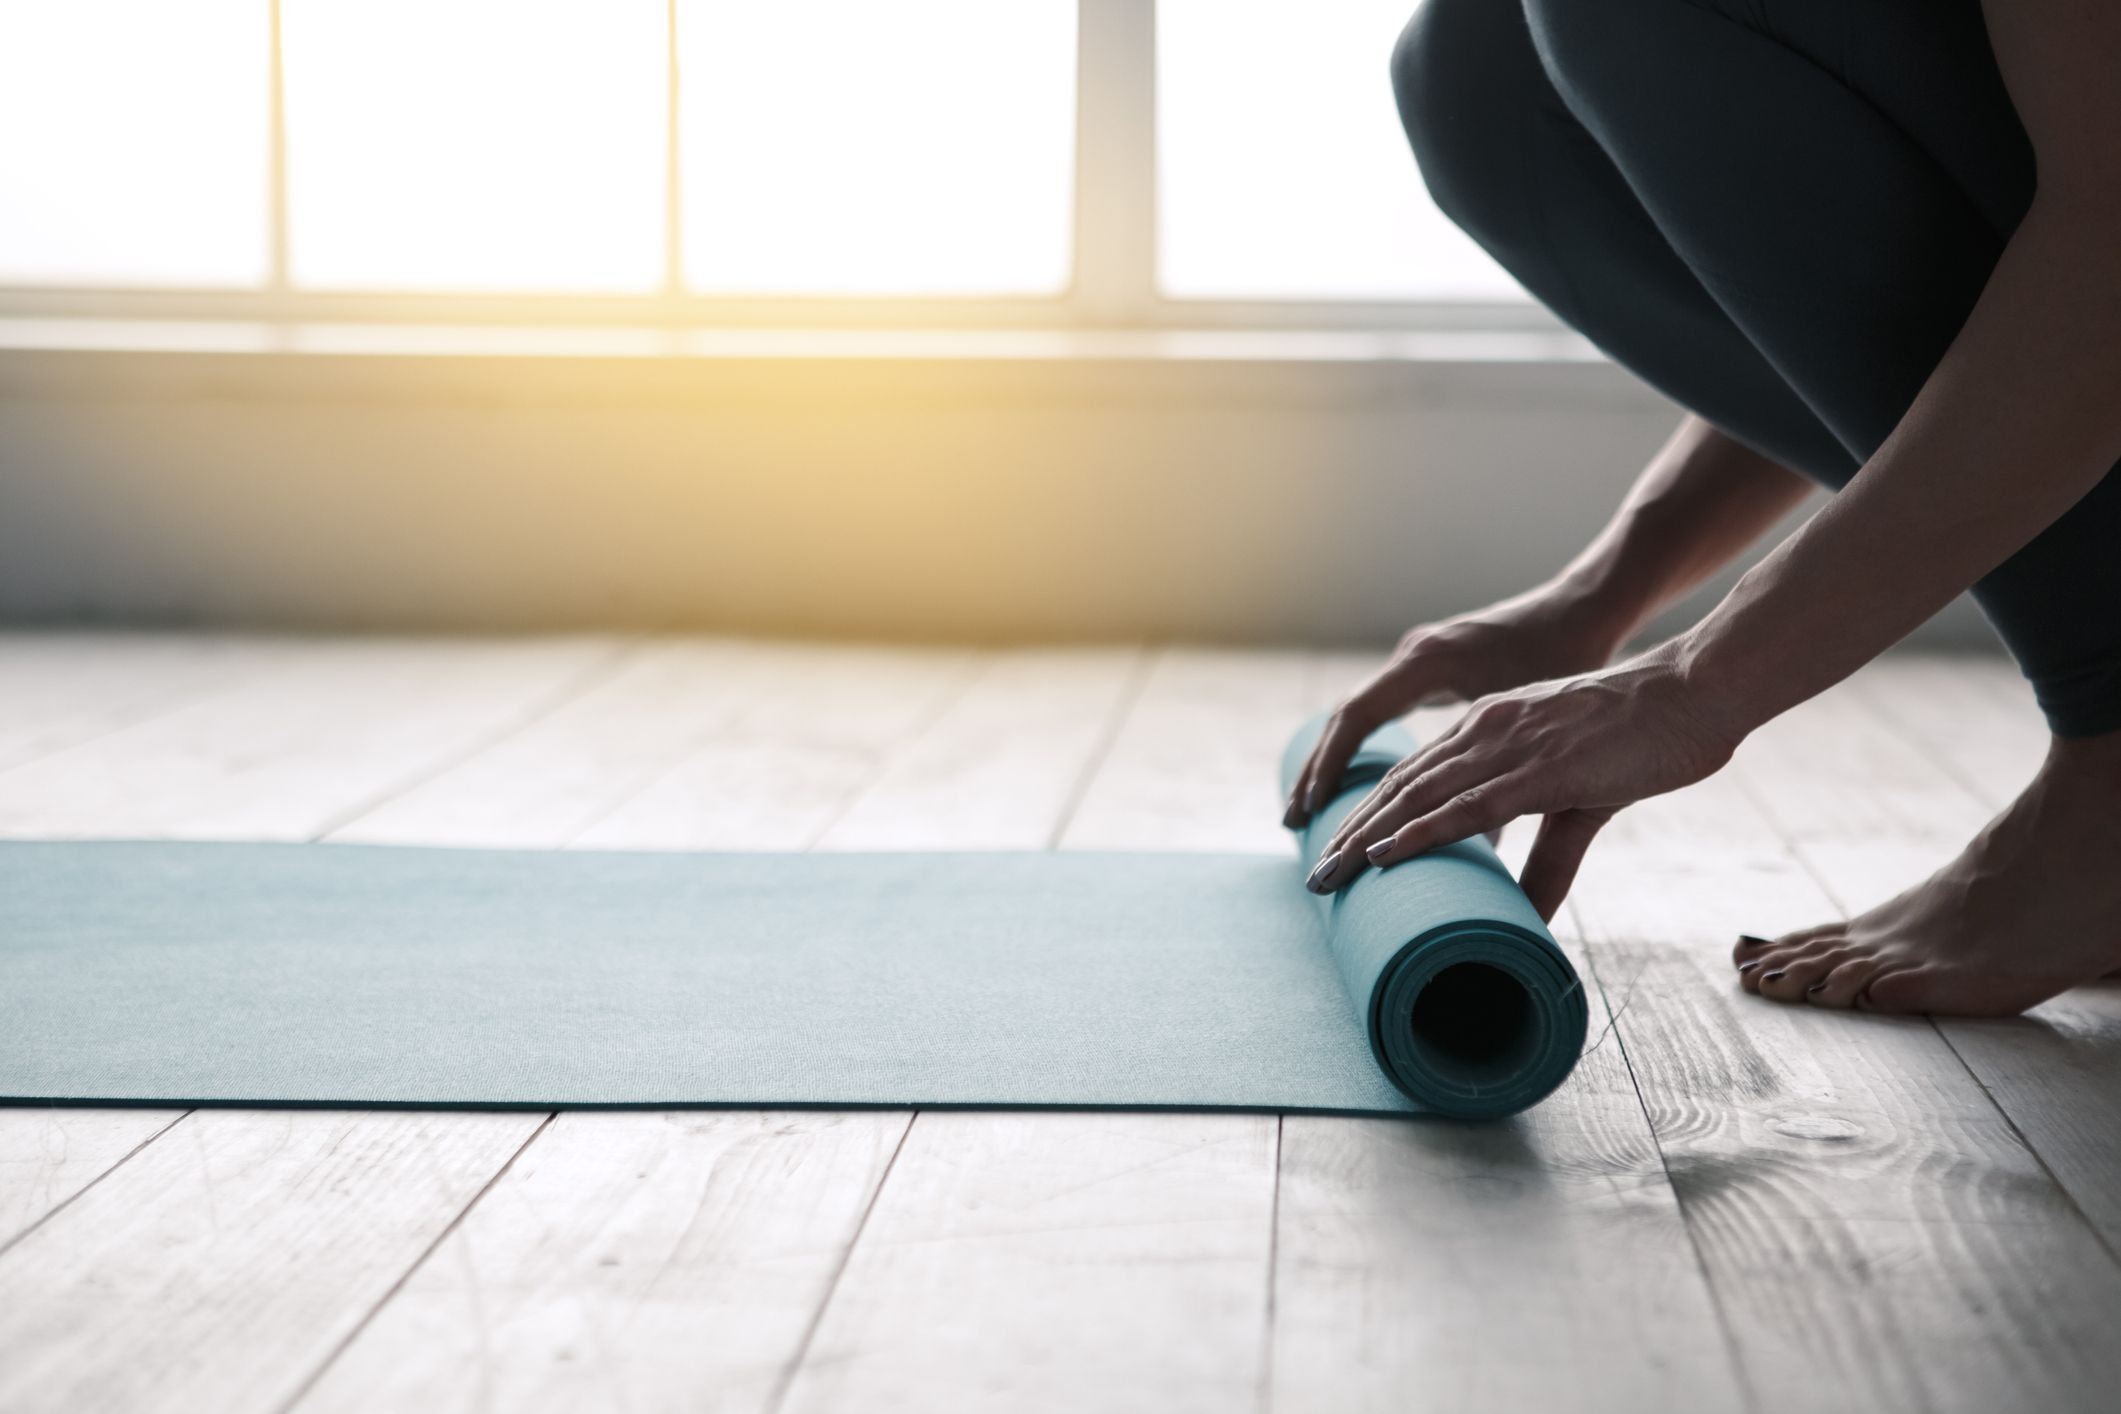 7 Best Yoga Apps 2020 Top Iphone And Android Apps For At Home Yoga